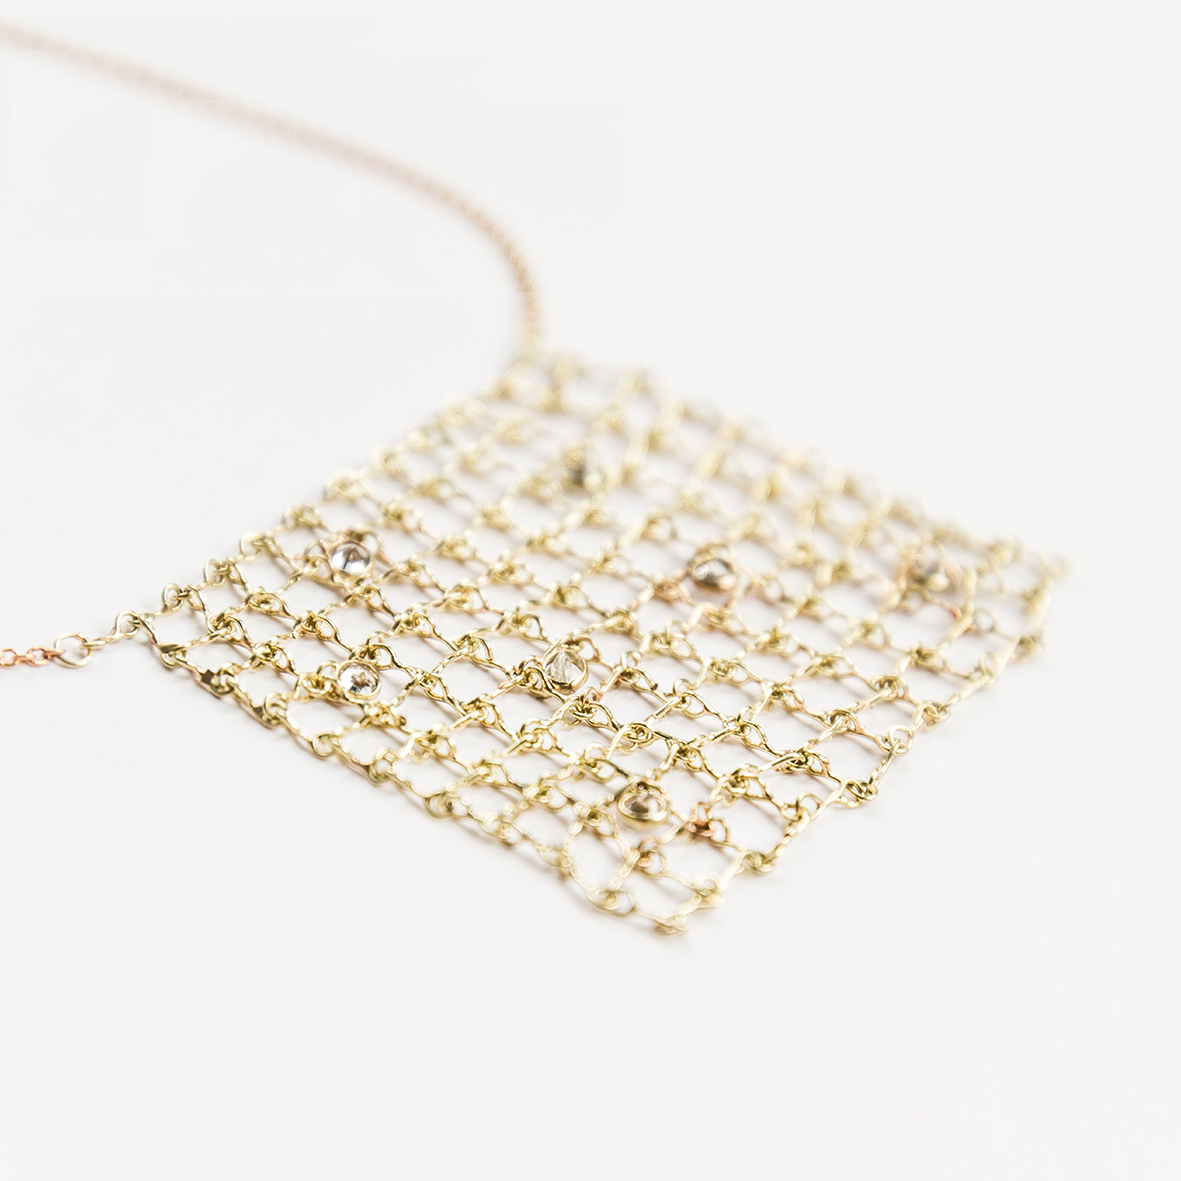 2. OONA_philo_principal_sapphire square net necklace